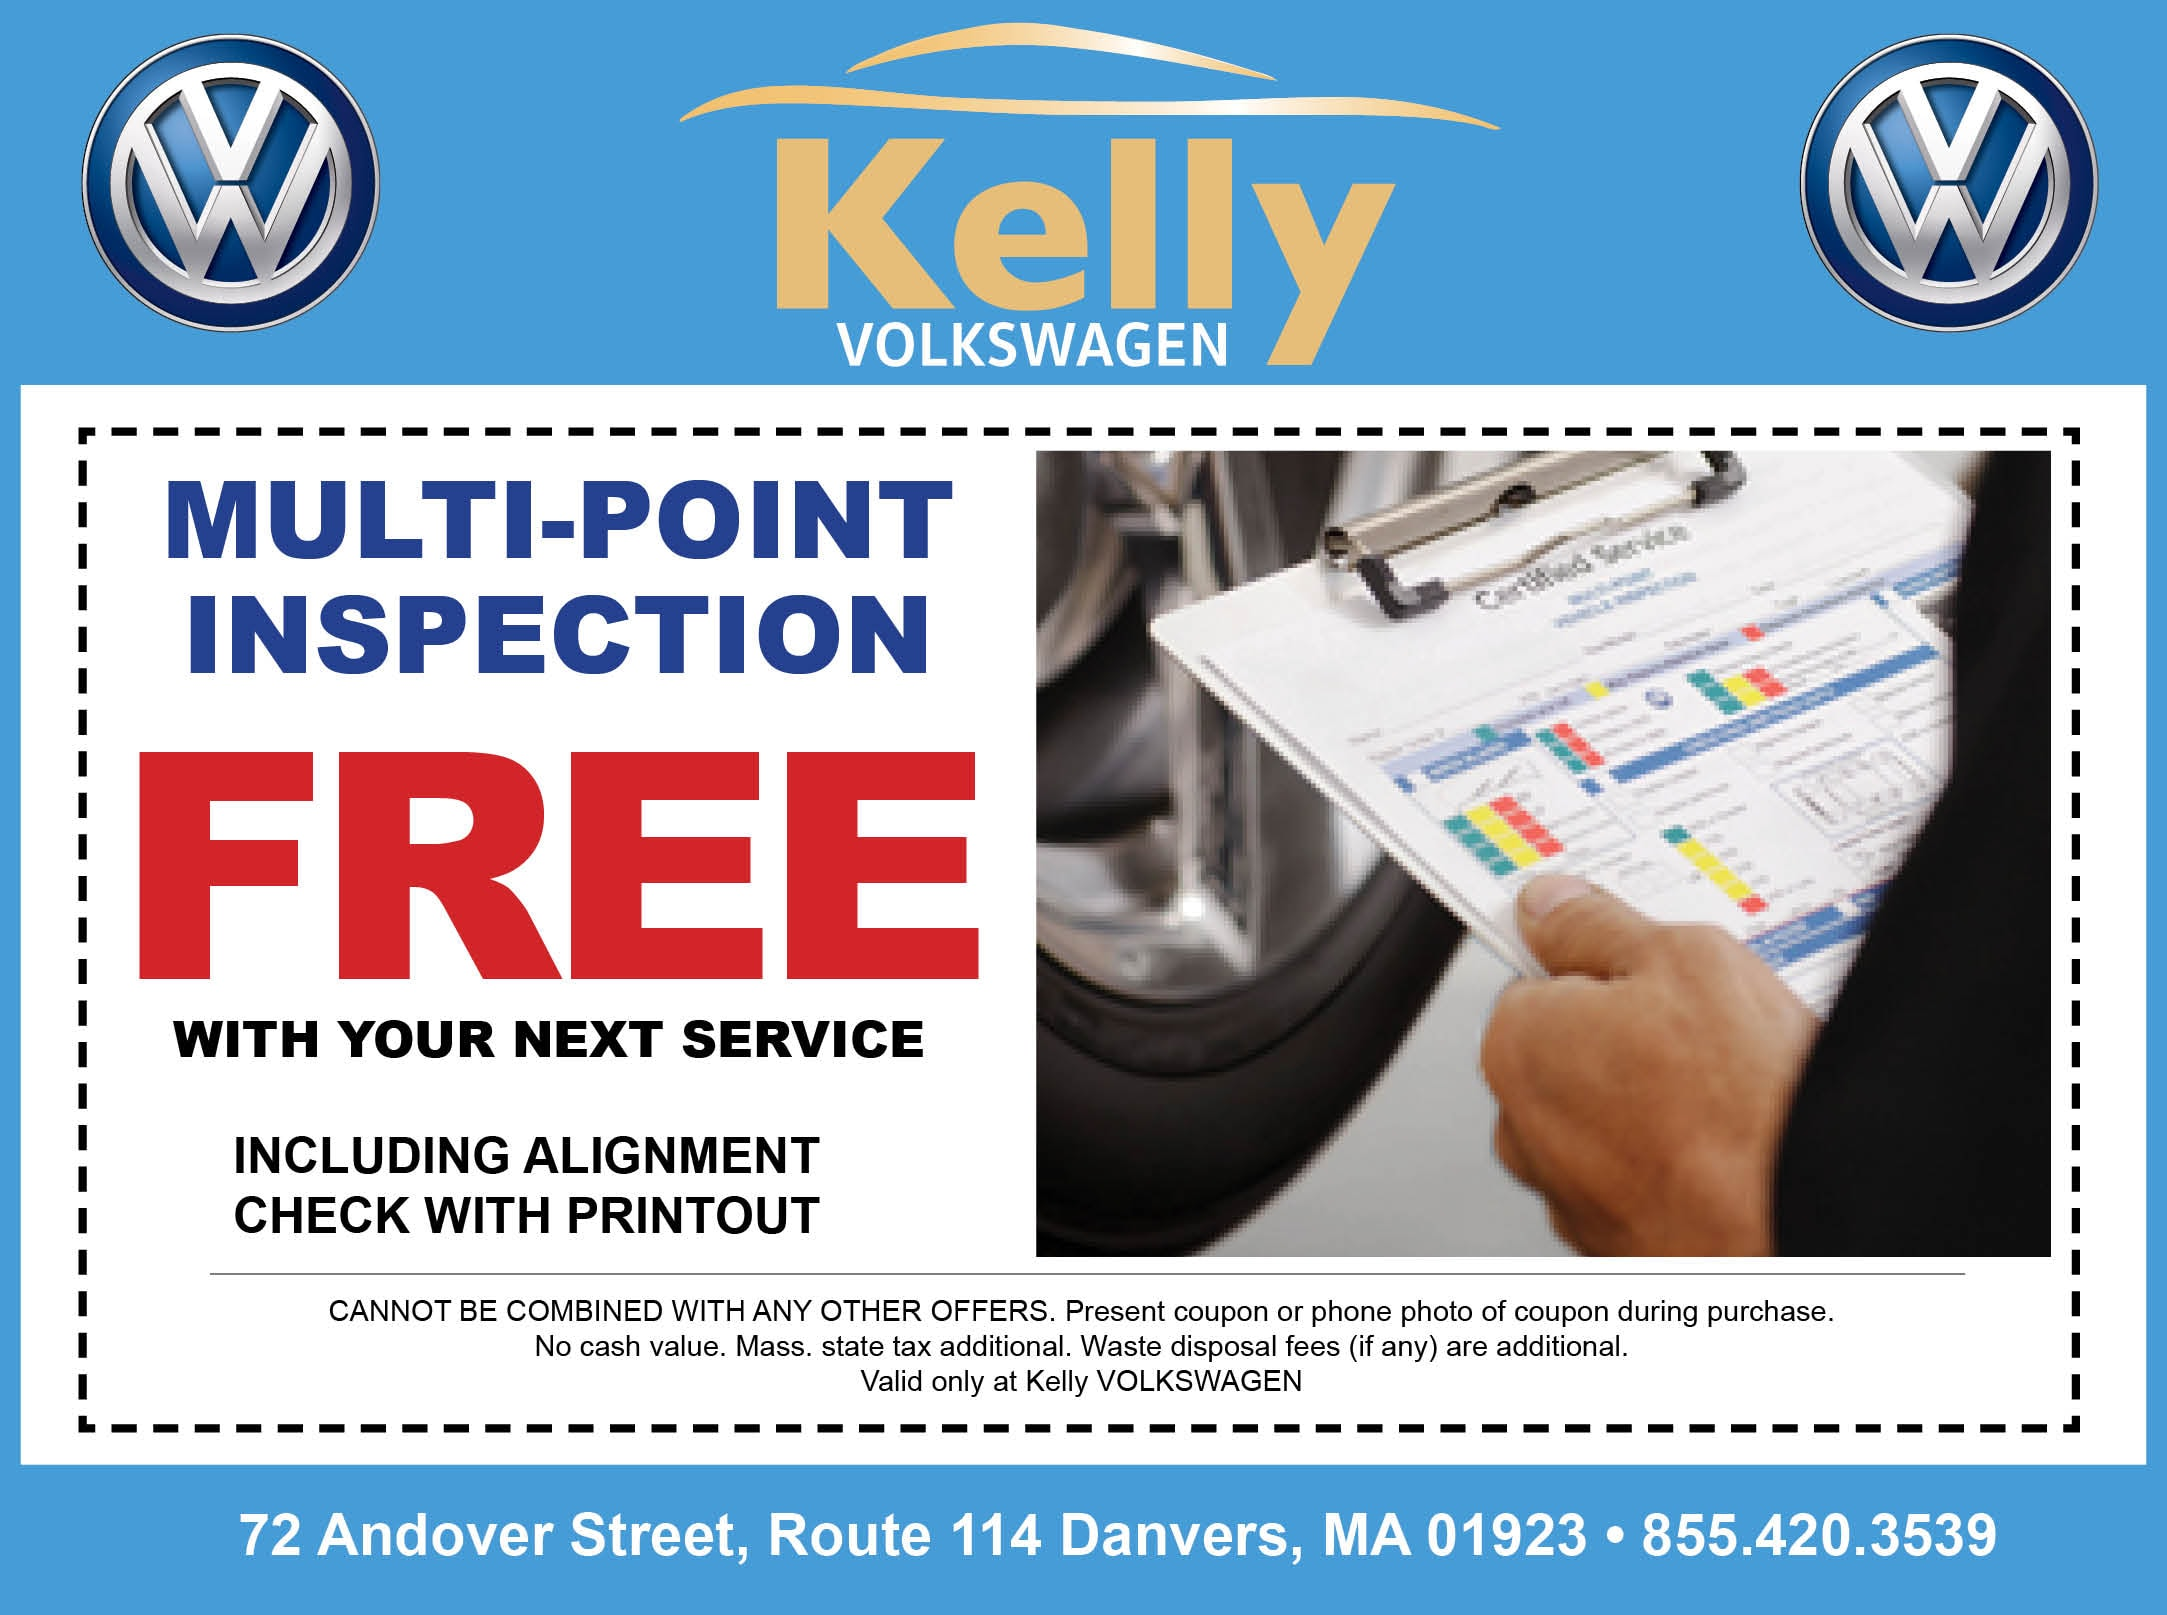 the applicable up shop time offers specials not one charges taxes near coupons nissan service cannot customer west any per write pittsburgh hills volkswagen of coupon cty presented combined in must be at with limit allegheny and